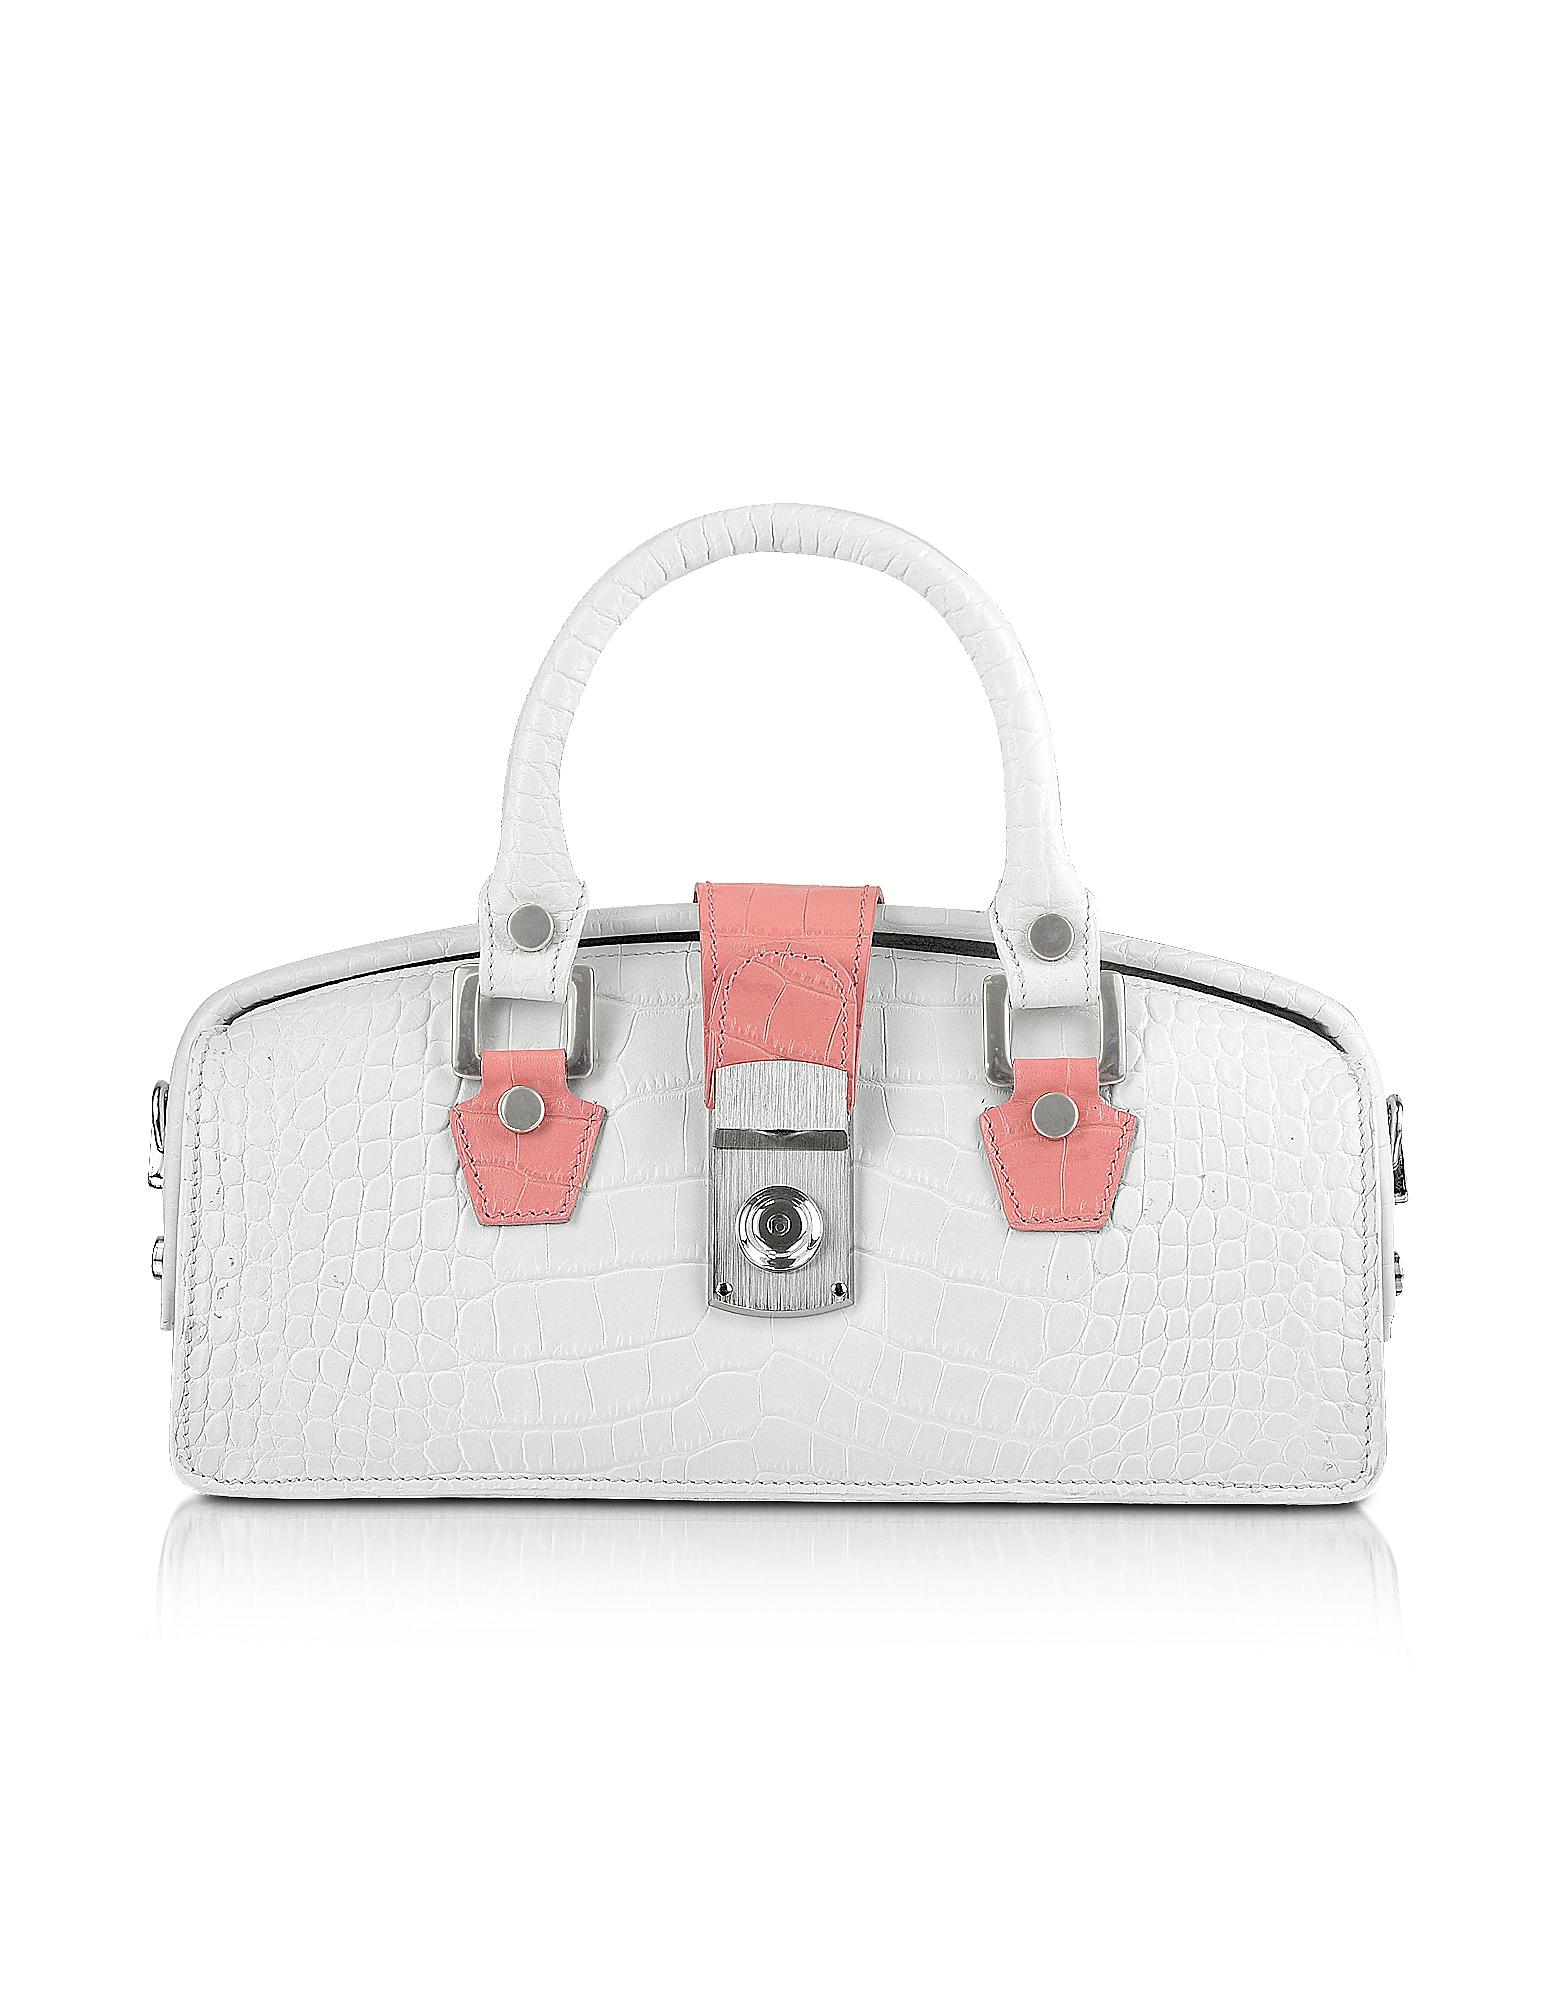 L.A.P.A. Handbags, Ivory Croco-embossed Leather Clutch